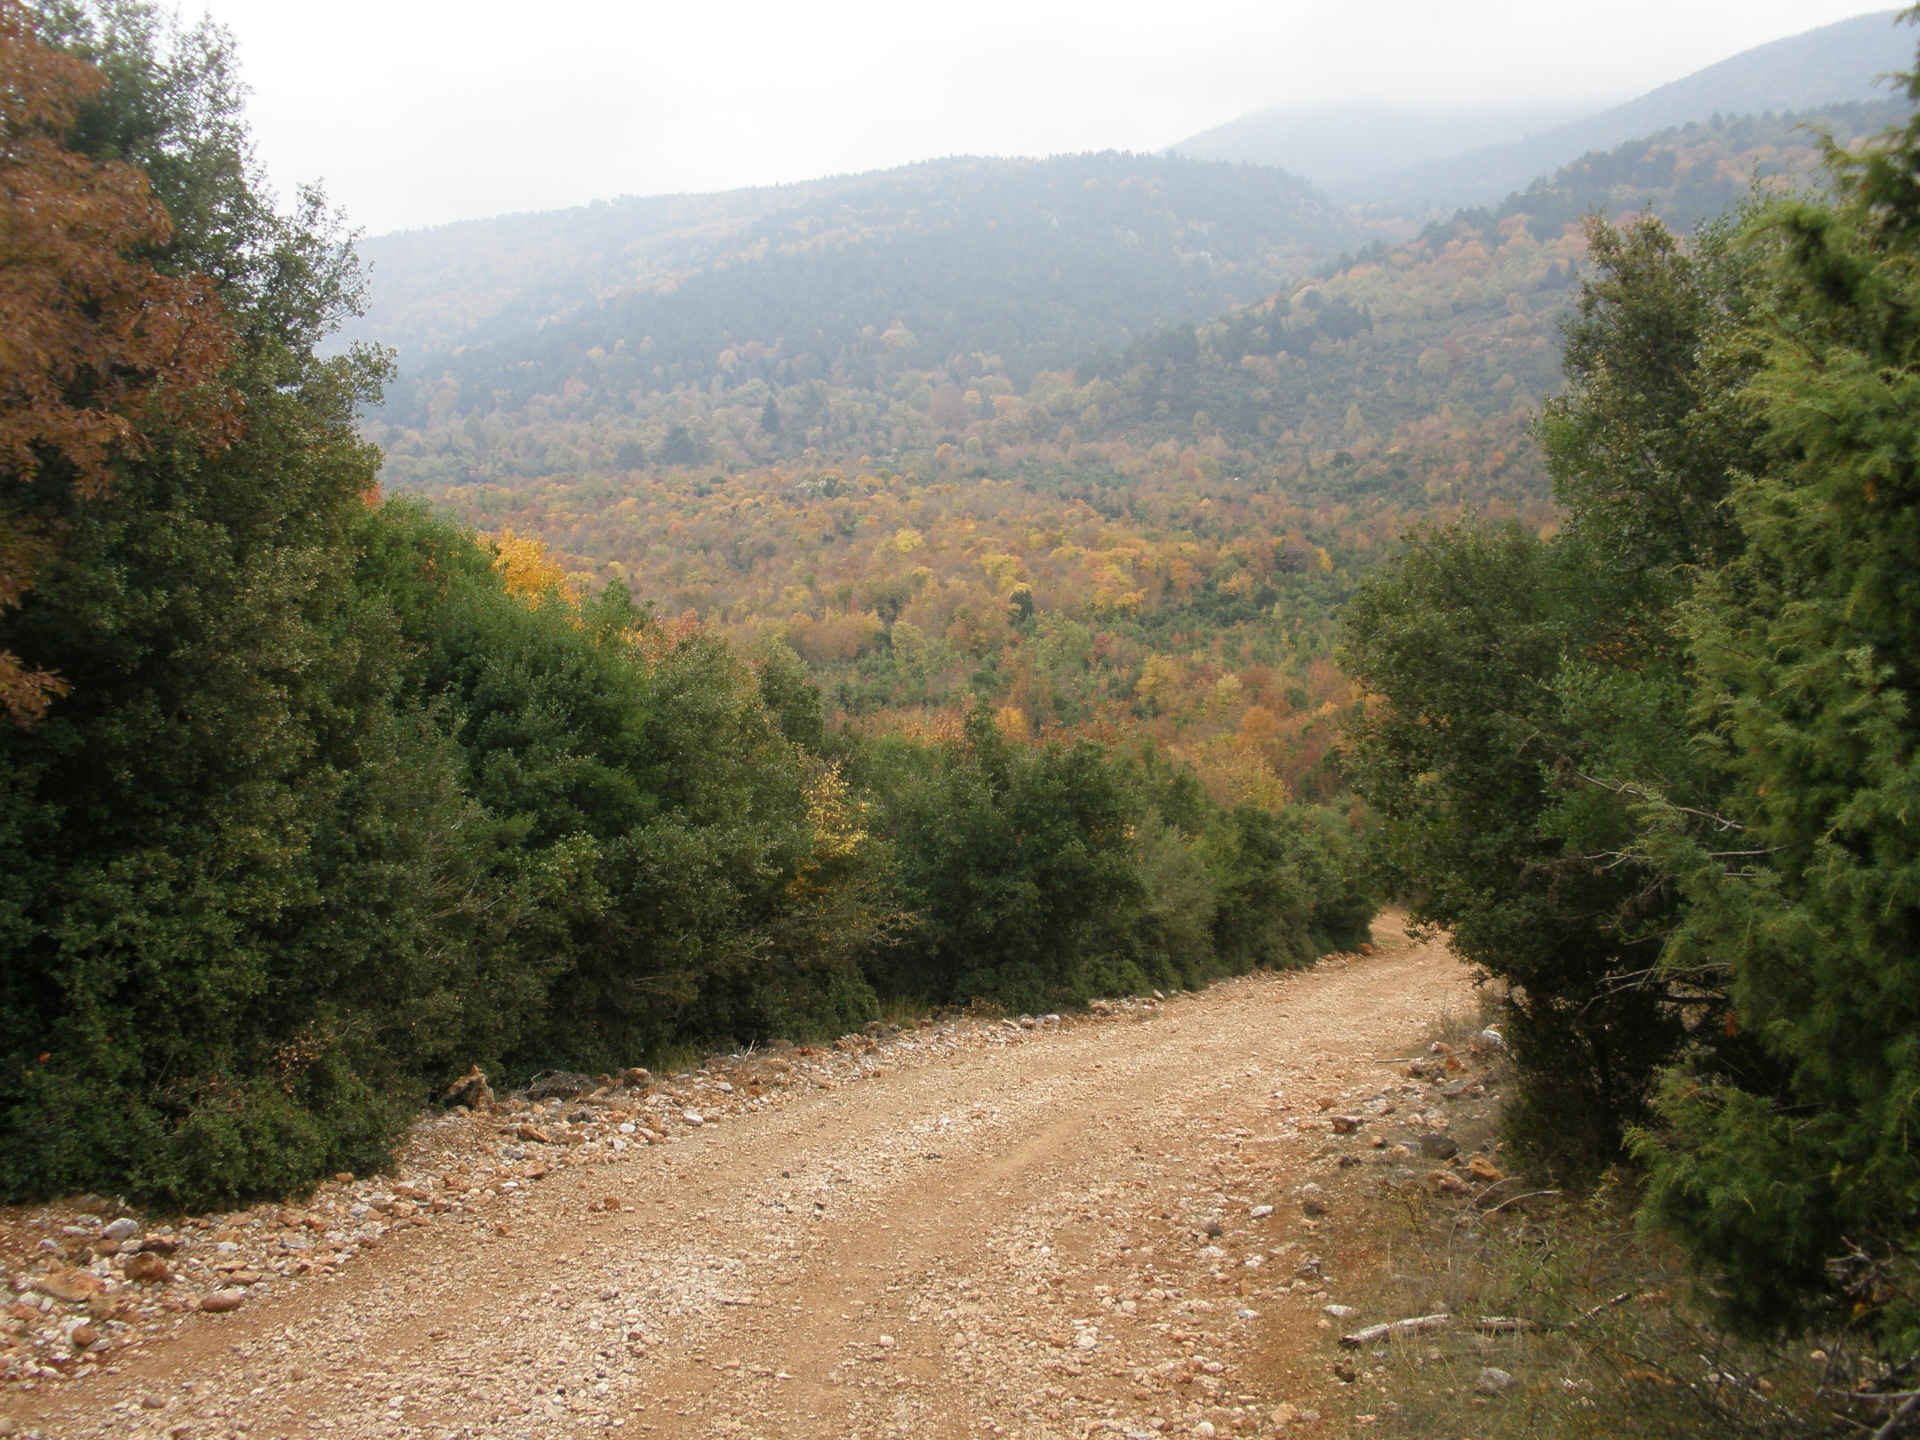 Dirt road near Petra leading into Mount Olympus surrounded by beautiful forests.